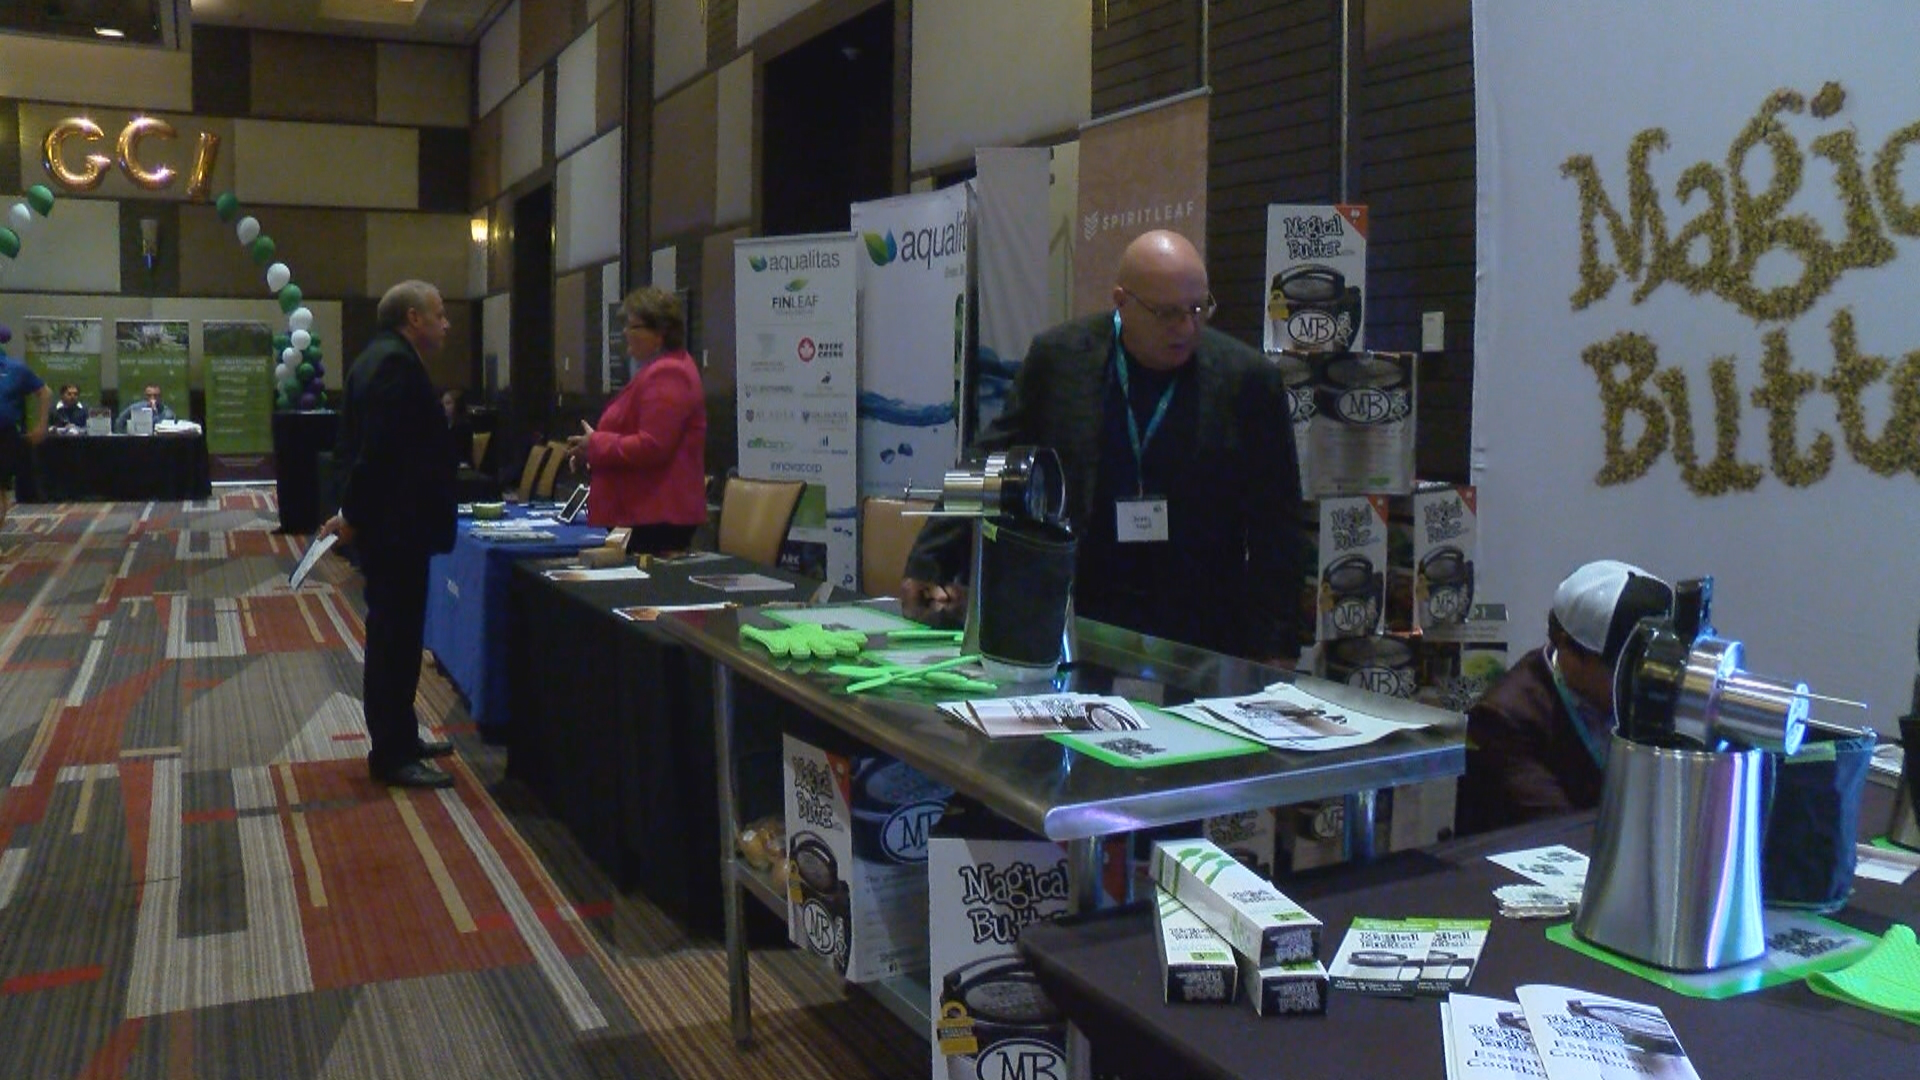 As more states like Nevada legalize marijuana, the industry is teeming with new ideas and innovative products. On Monday, cannabis entrepreneurs gathered at the M Resort in hopes of landing big investors. (KSNV)